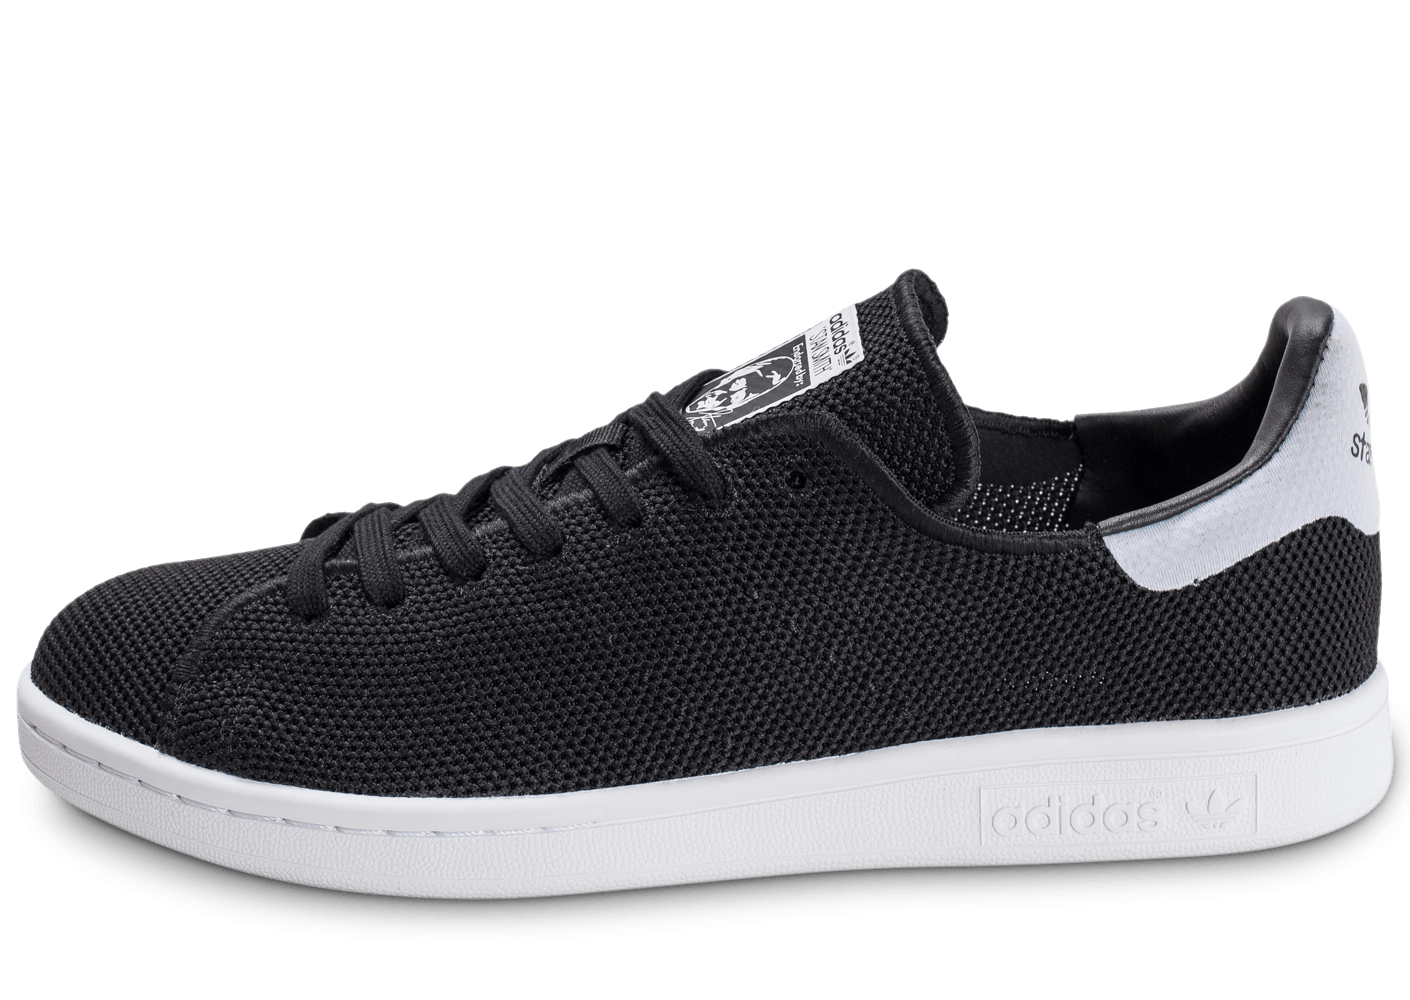 stan smith adidas noir et blanc